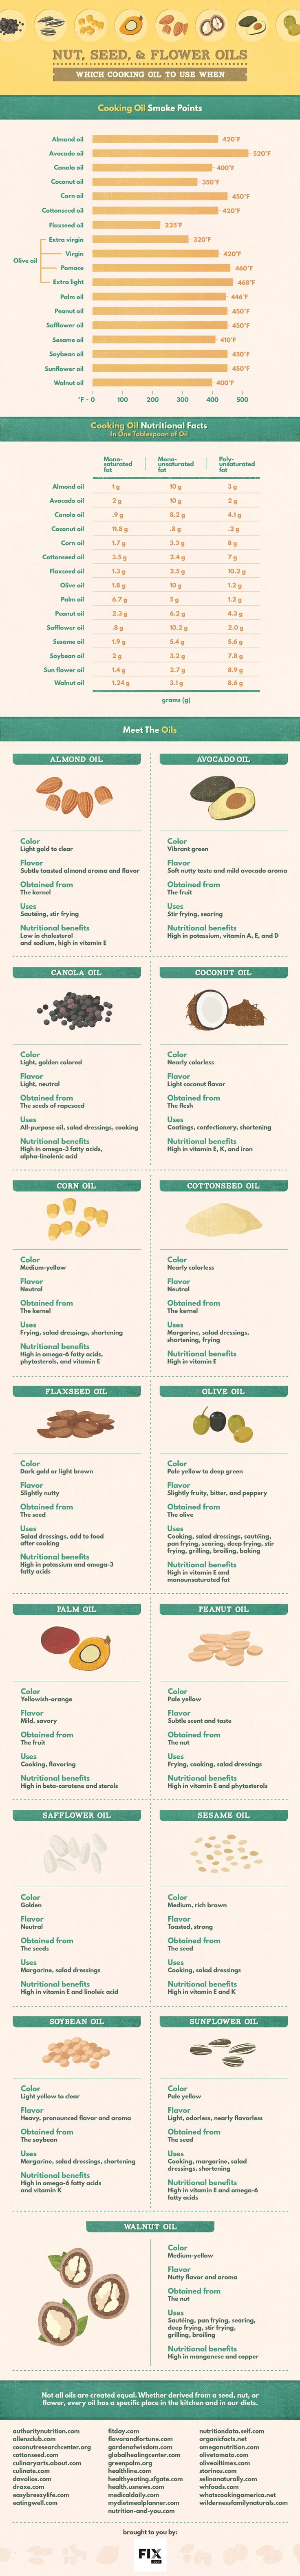 Learn about the properties of your favorite nut, seed, and flower oils with Fix.com's complete guide to cooking oils. #food #cooking